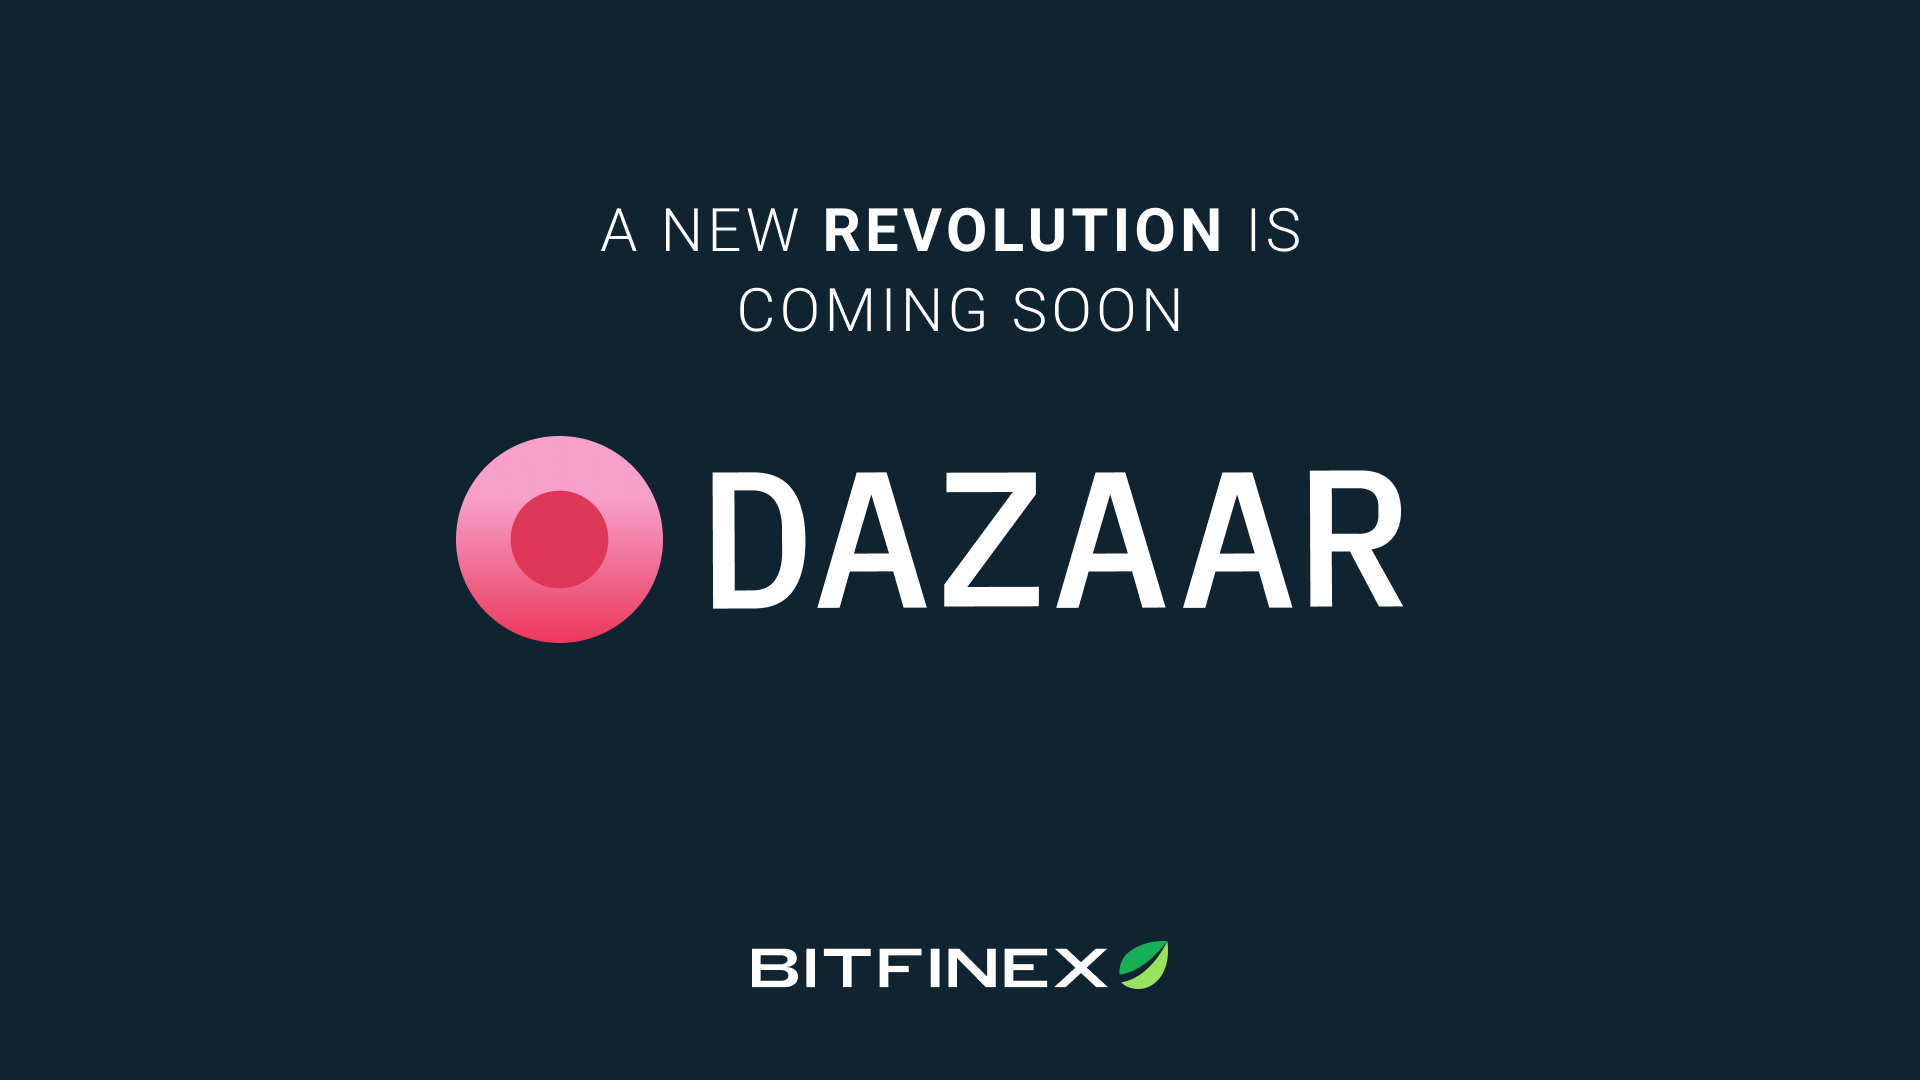 Dazaar, how the internet should be – open, free and hyper scalable